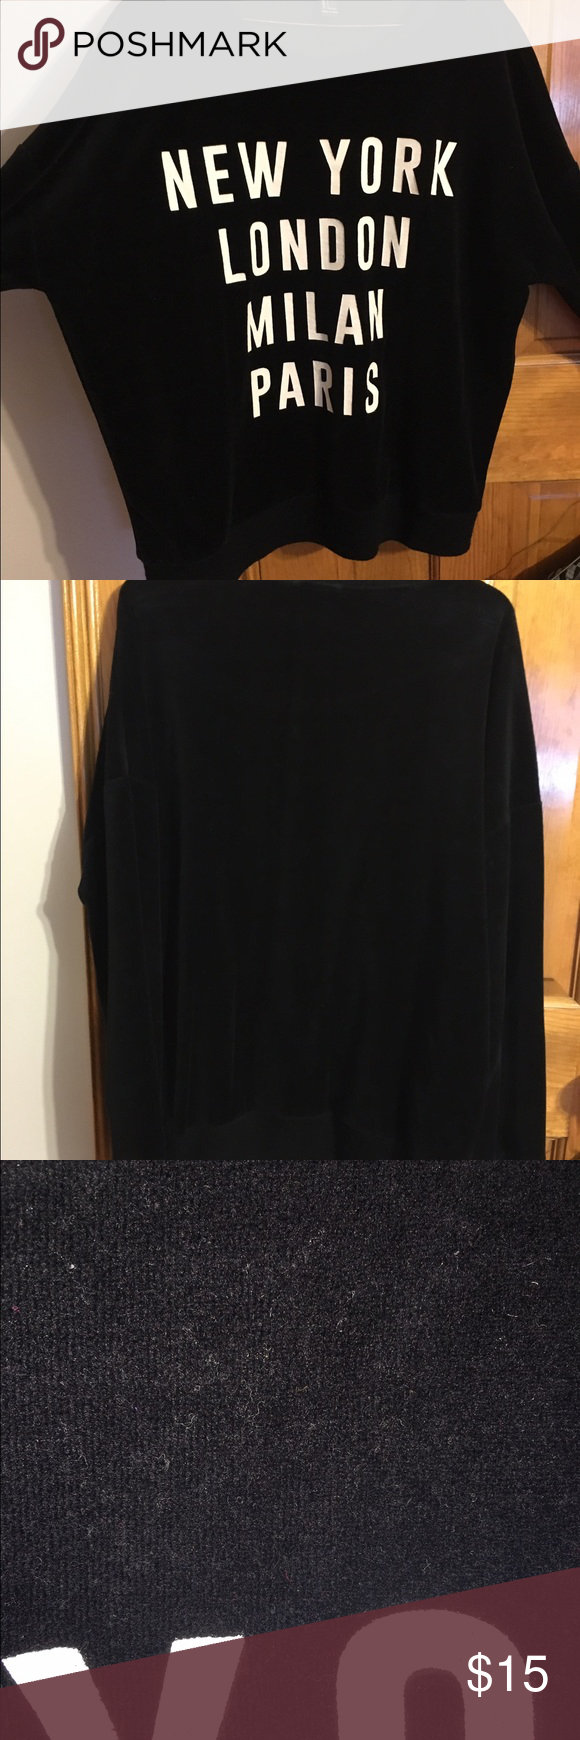 Forever 21 Black Long Sleeve Shirt This is probably the softest shirt I've ever owned! Sooo comfortable and warm! Purchased from Forever 21. Size Large. Tops Sweatshirts & Hoodies